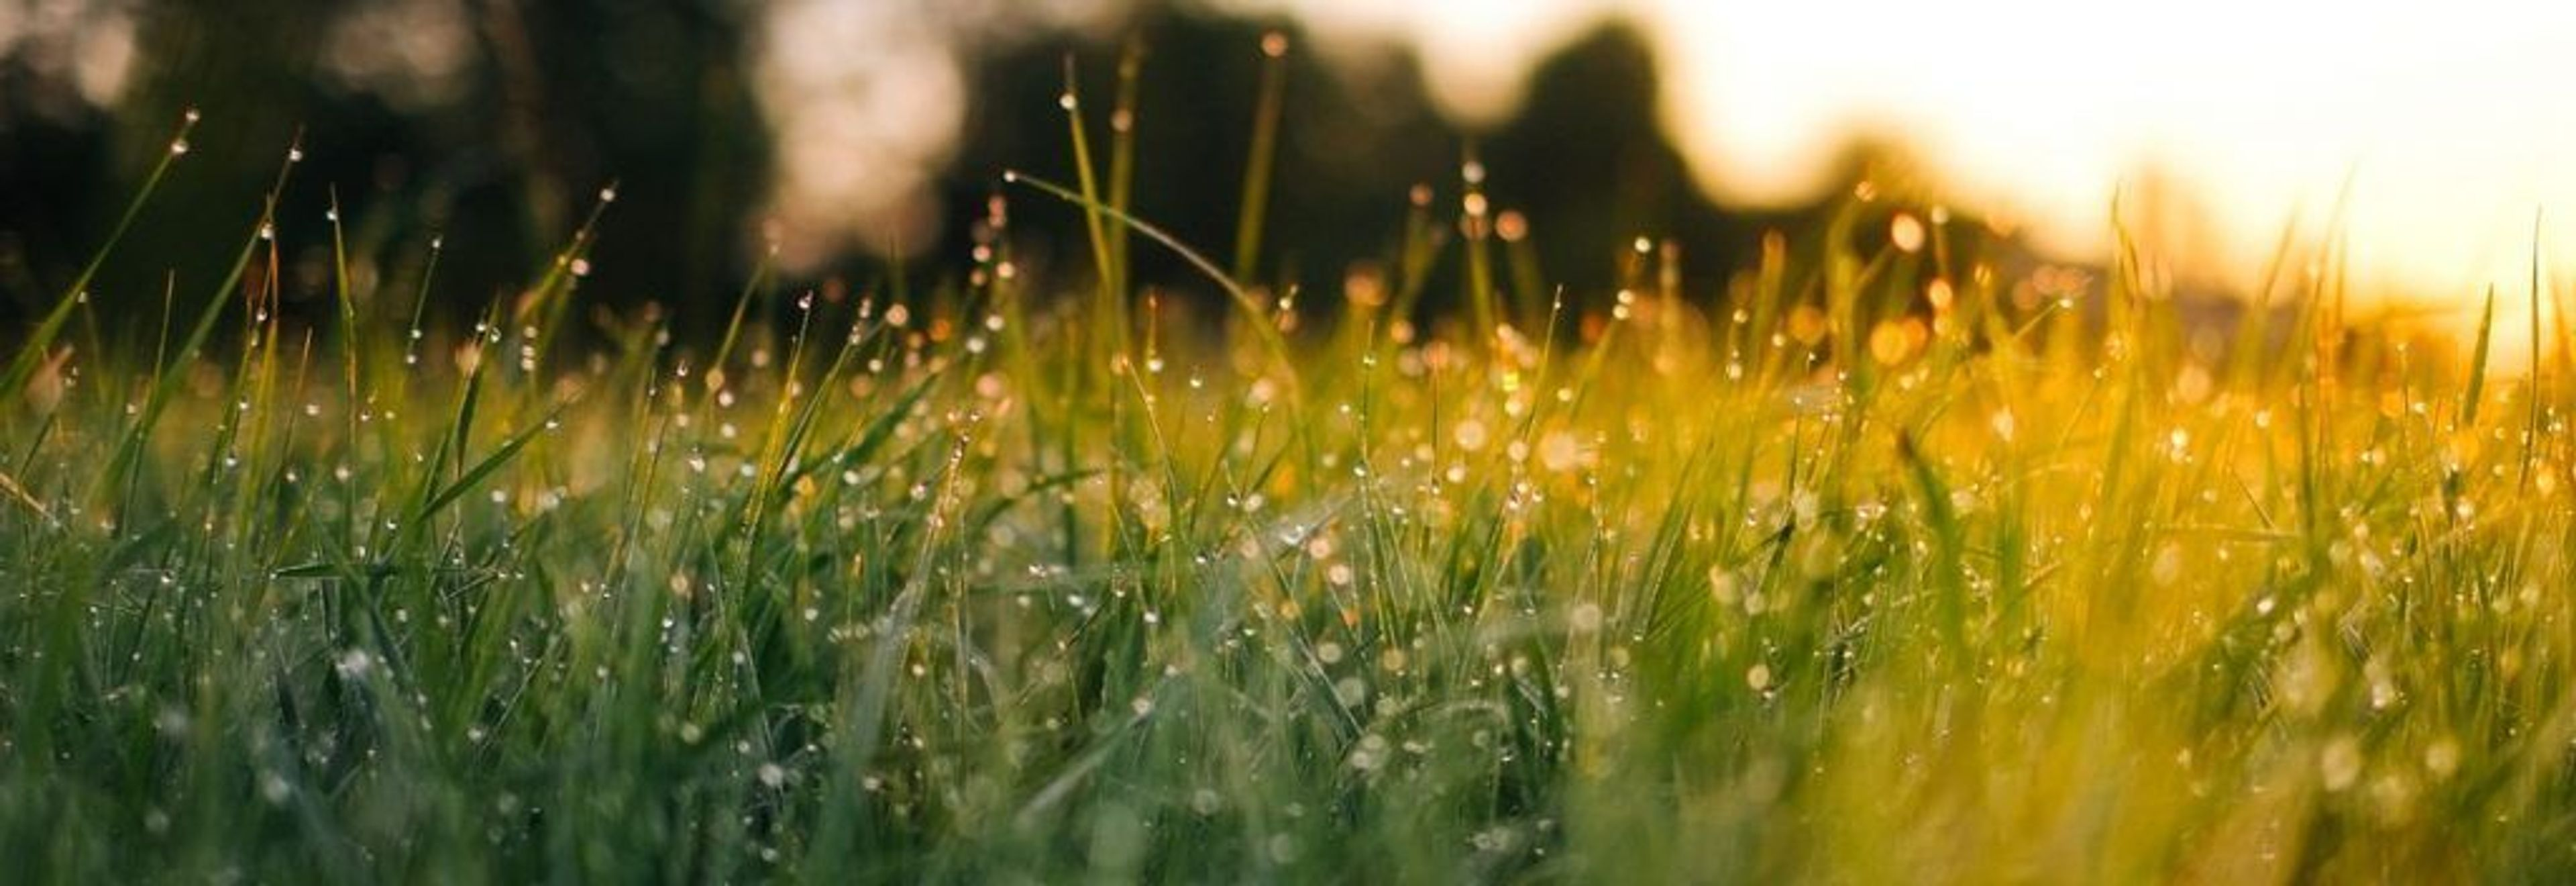 Blades of grass with rain droplets on them